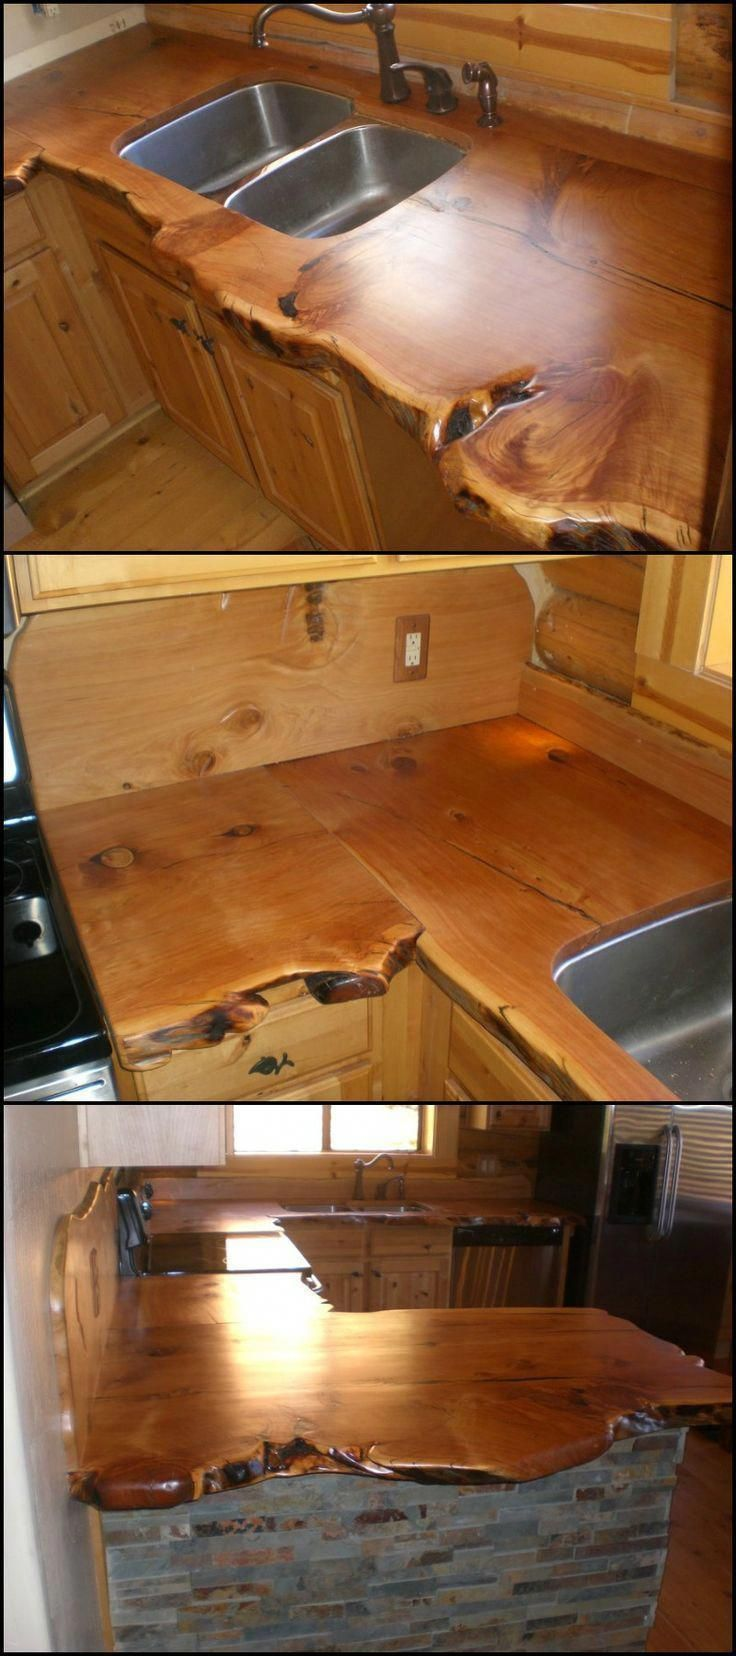 A Cabin Or A Rustic Themed House Isn T Complete Without A Rustic Kitchen Countertop If You Re Re Designing Your Design Your Home Rustic Kitchen Rustic House